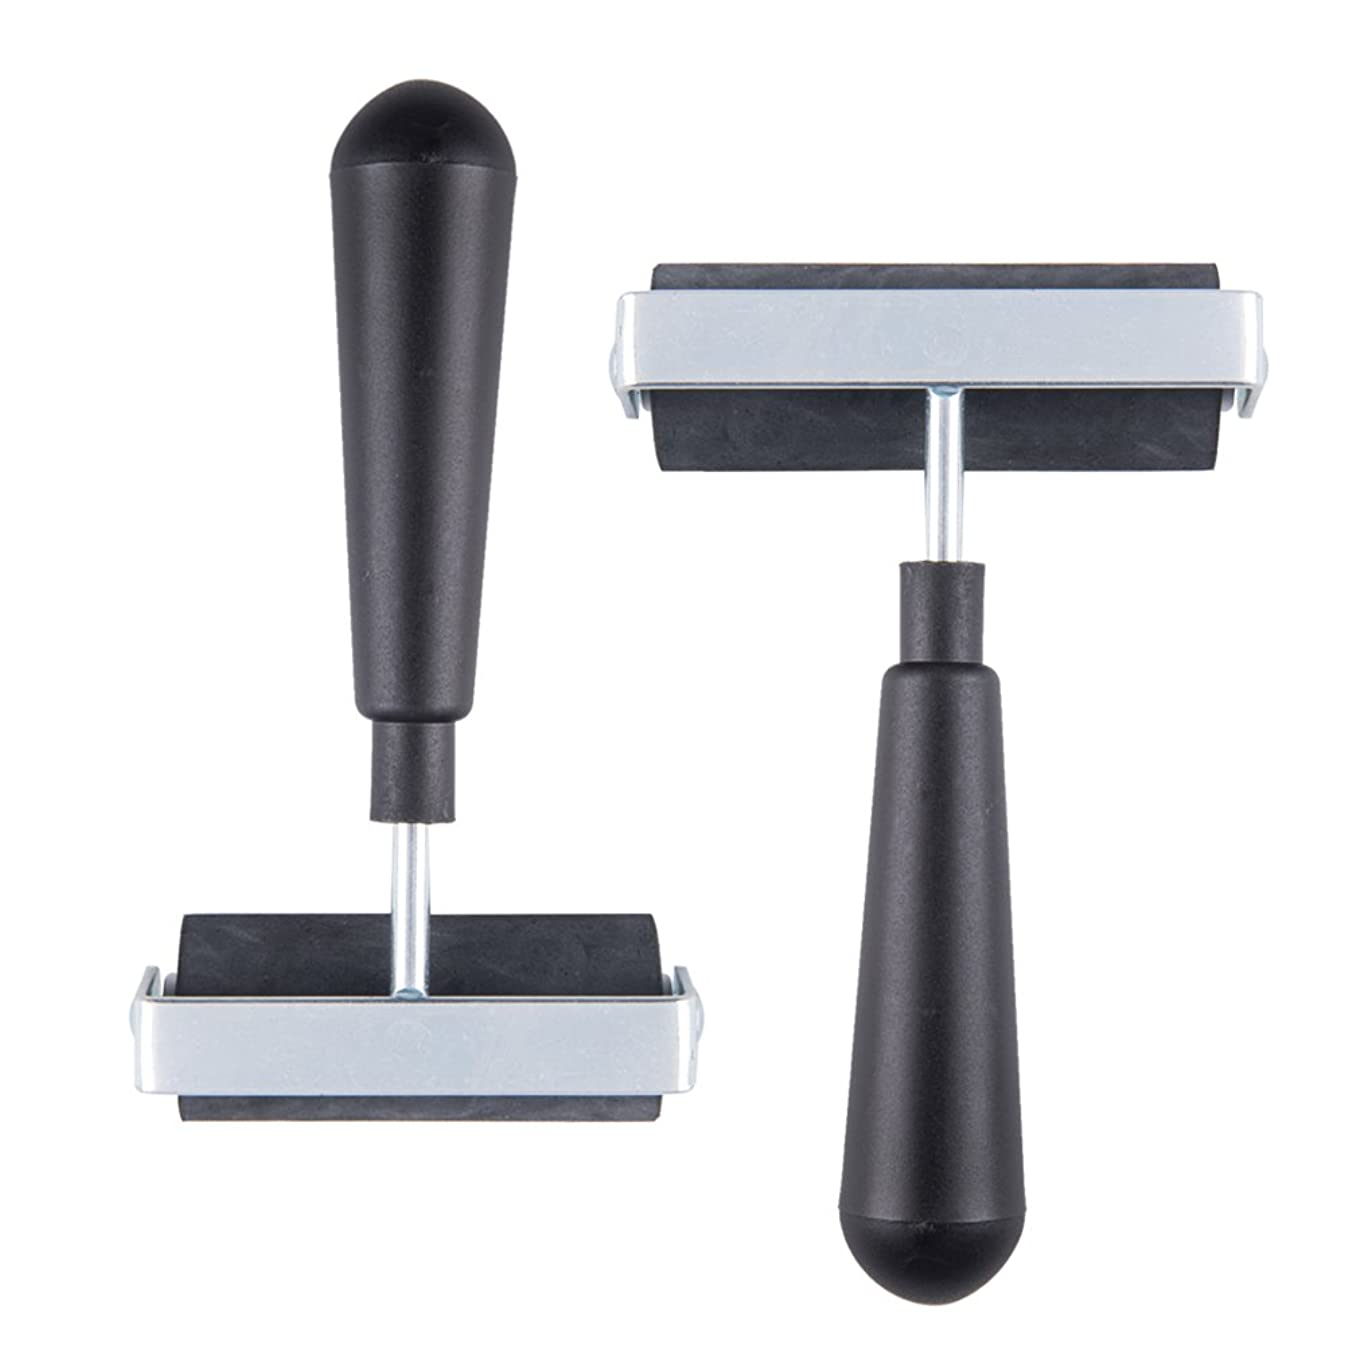 Fasmov 4-inch & 3- inch Hard Rubber Brayer Rubber Roller for Printing, Scrapbooks, Wallpapers,Pack of 2